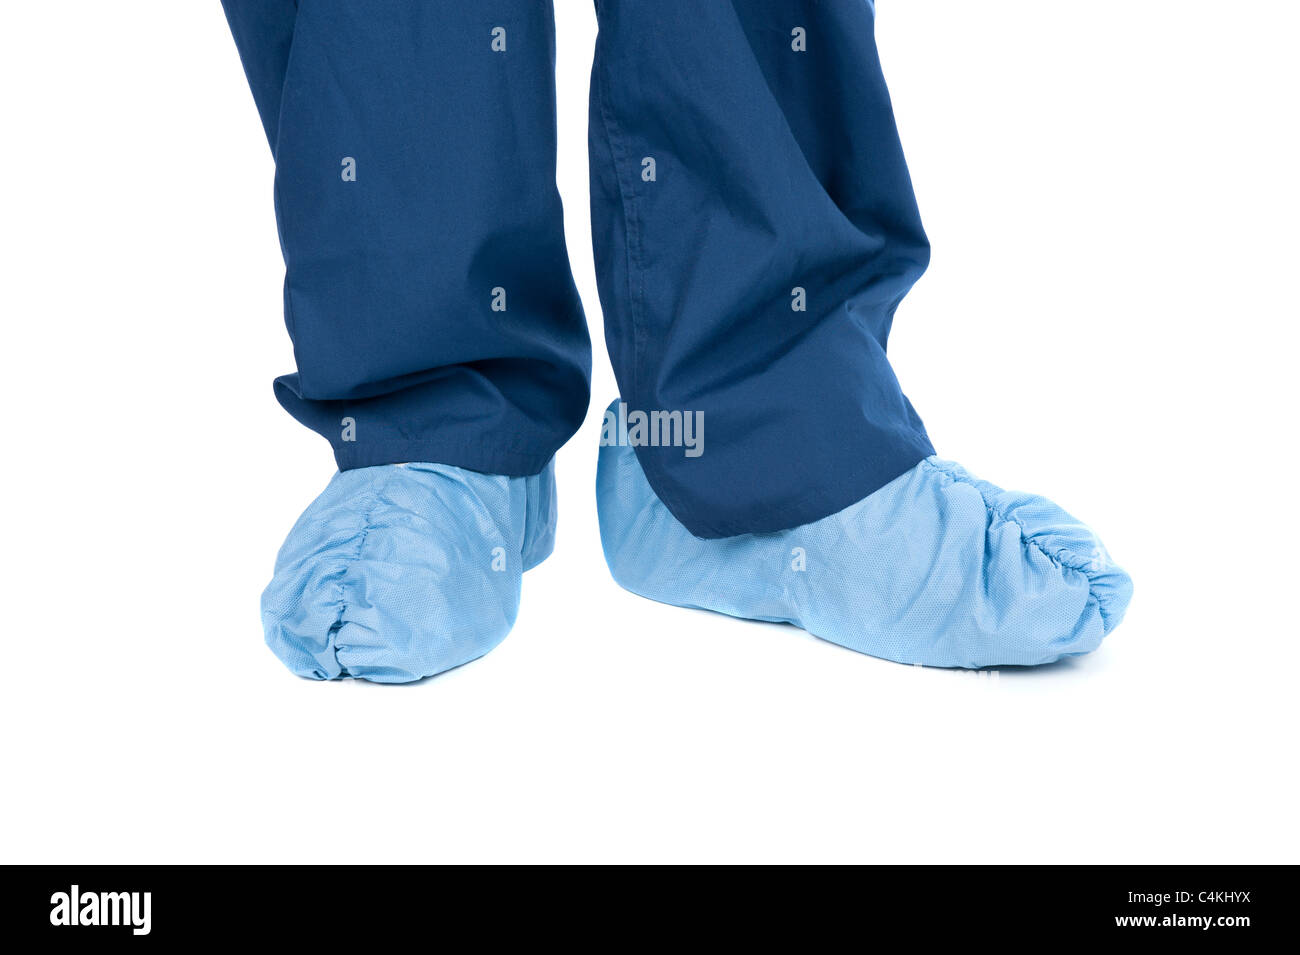 A doctor wearing protective medical scrubs and feet coverings. Stock Photo